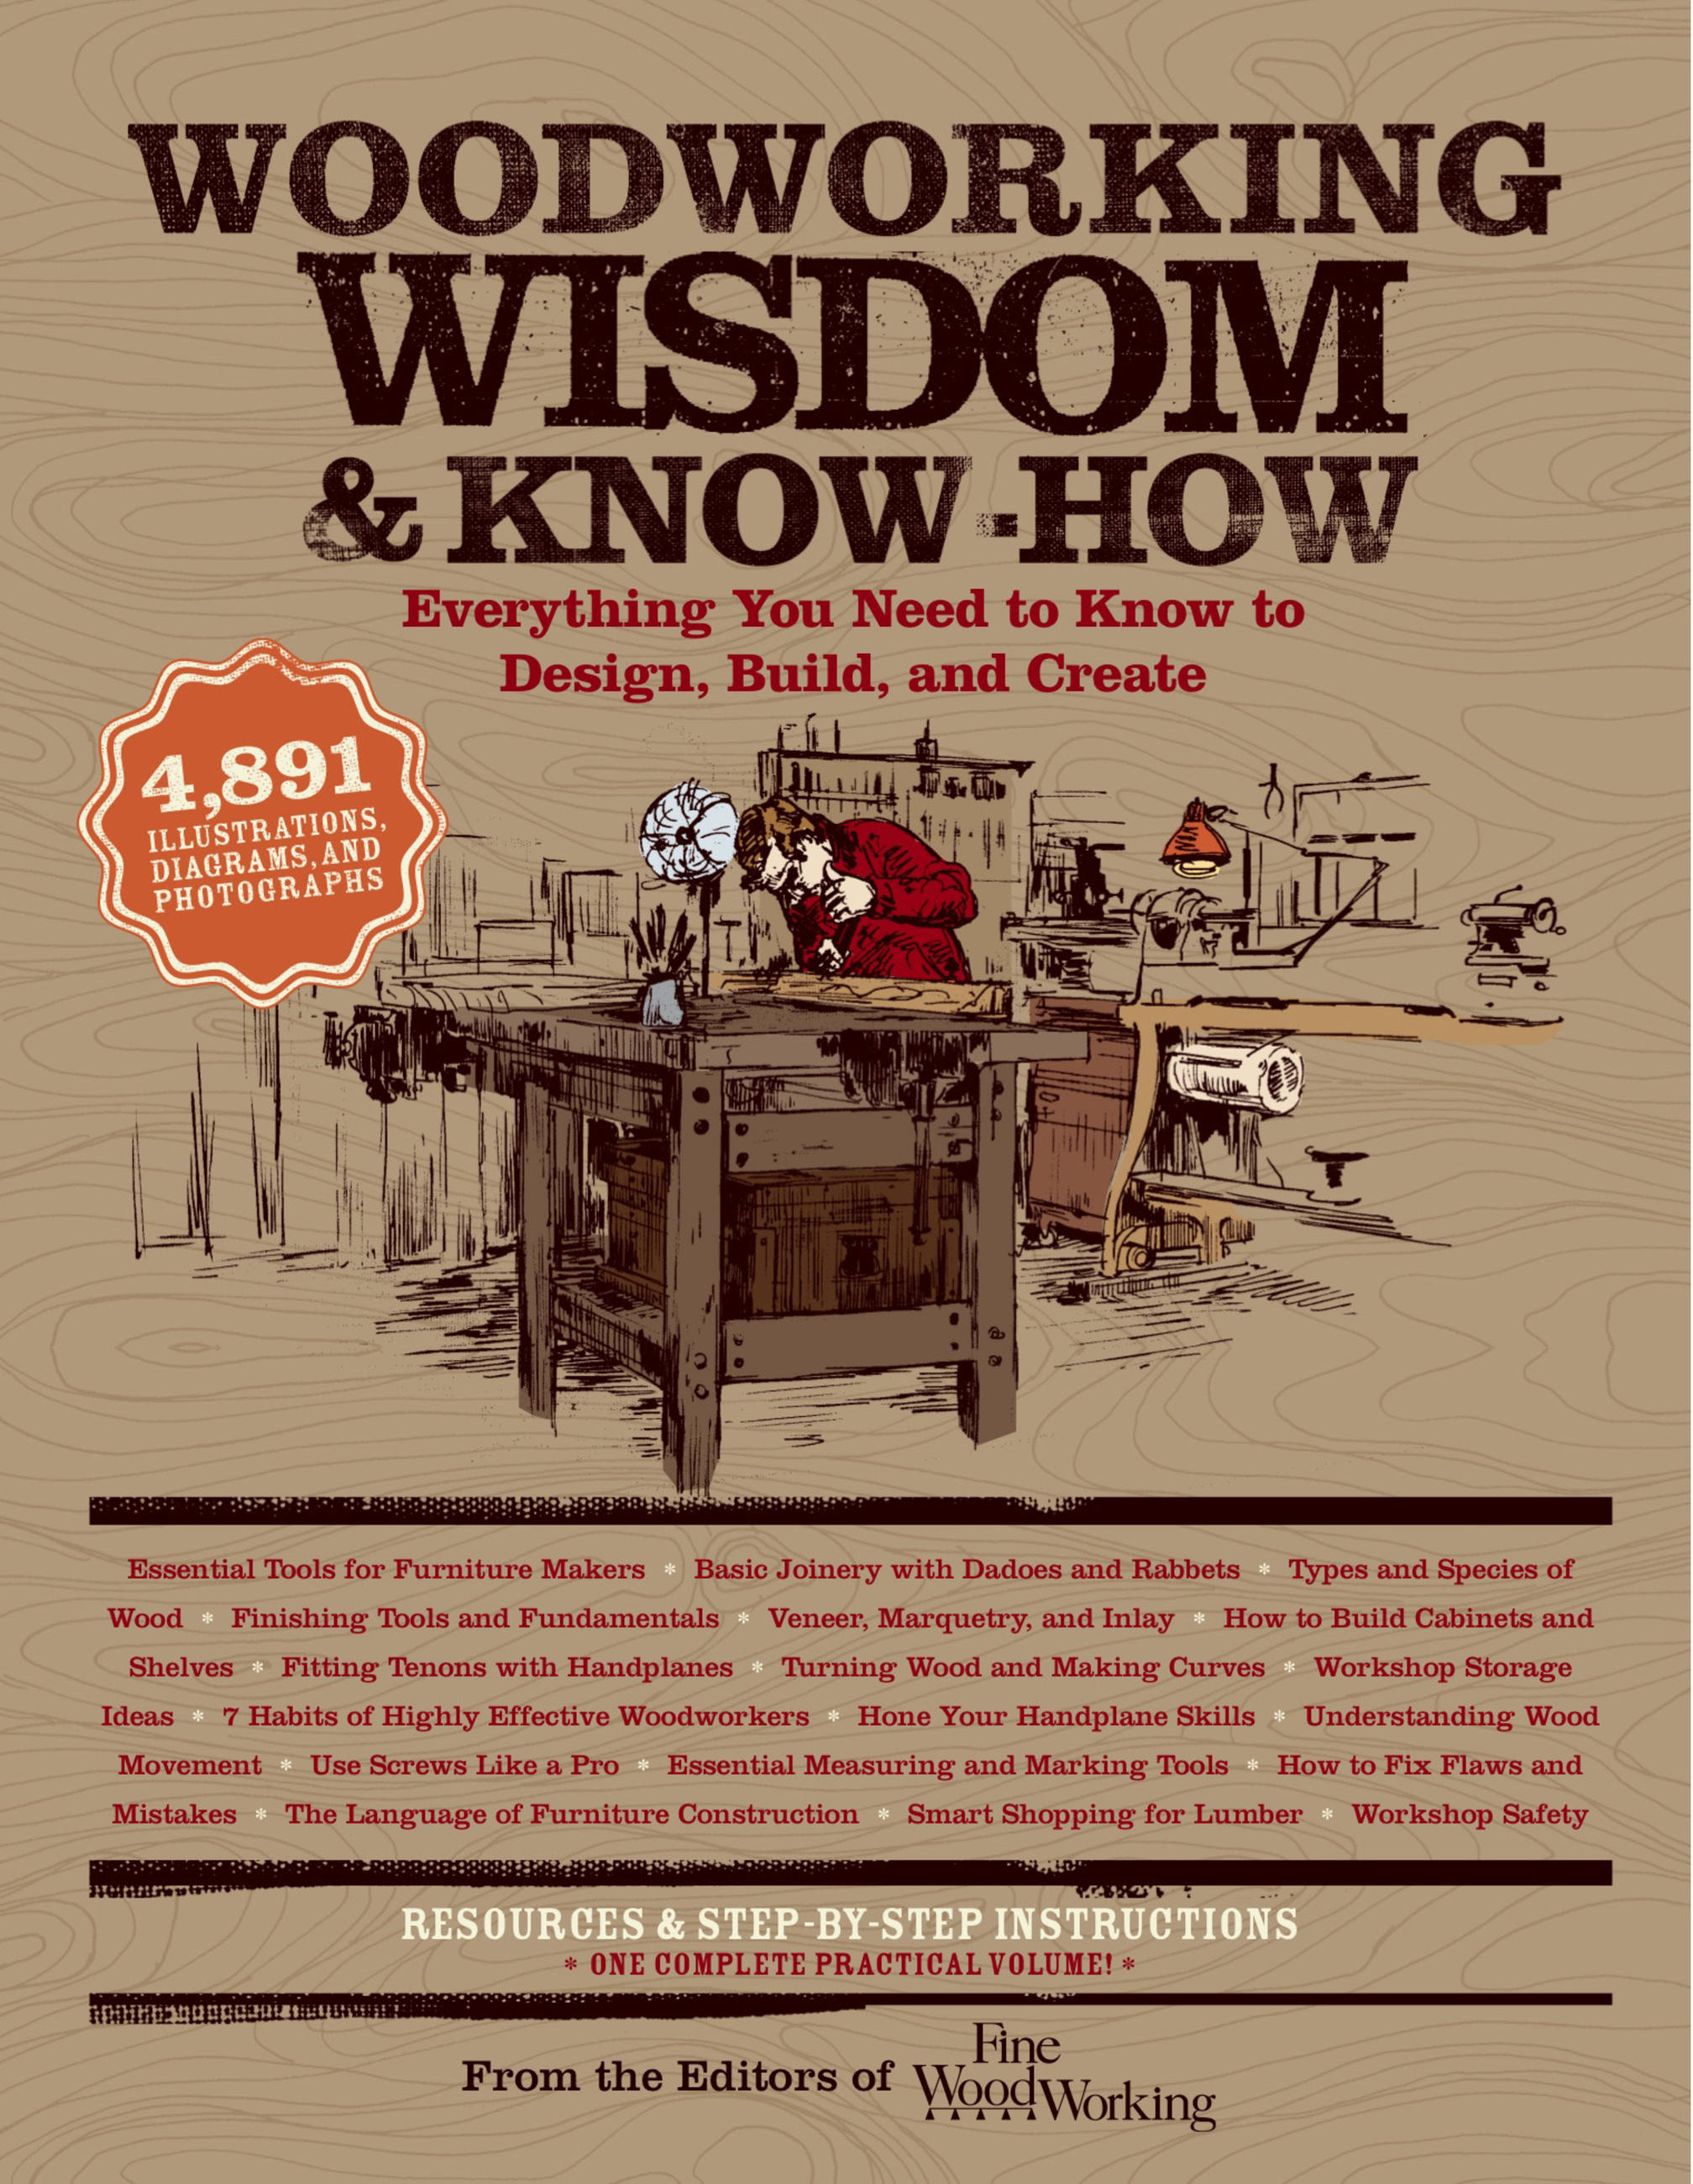 Woodworking Wisdom & Know-How by -Taunton Press- - Read on Glose